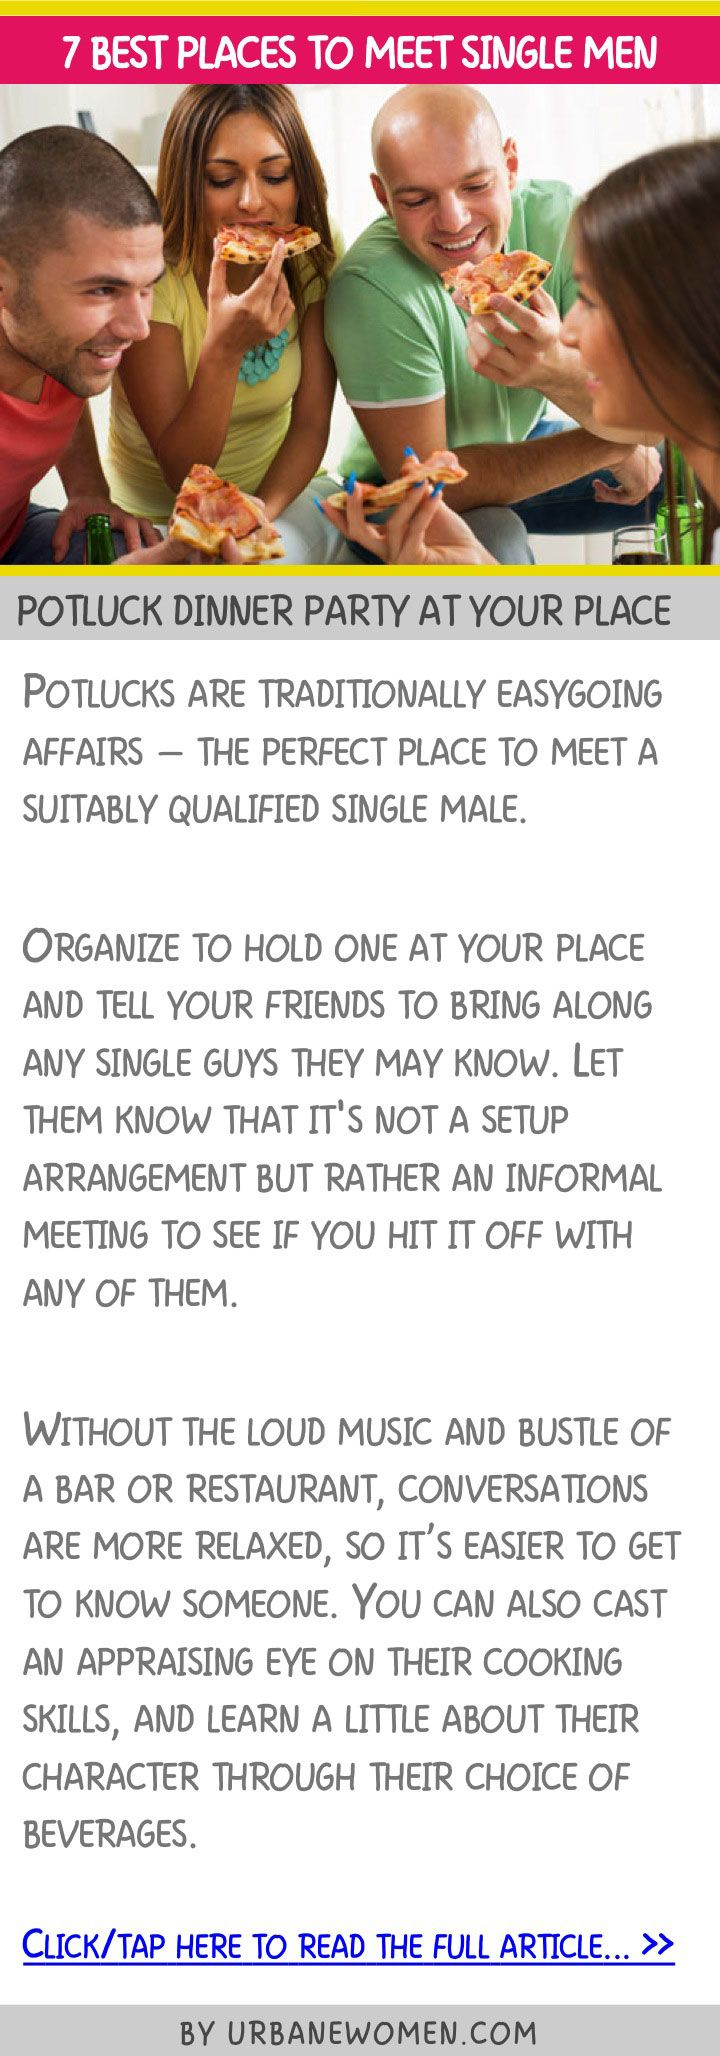 7 best places to meet single men - Potluck dinner party at your place